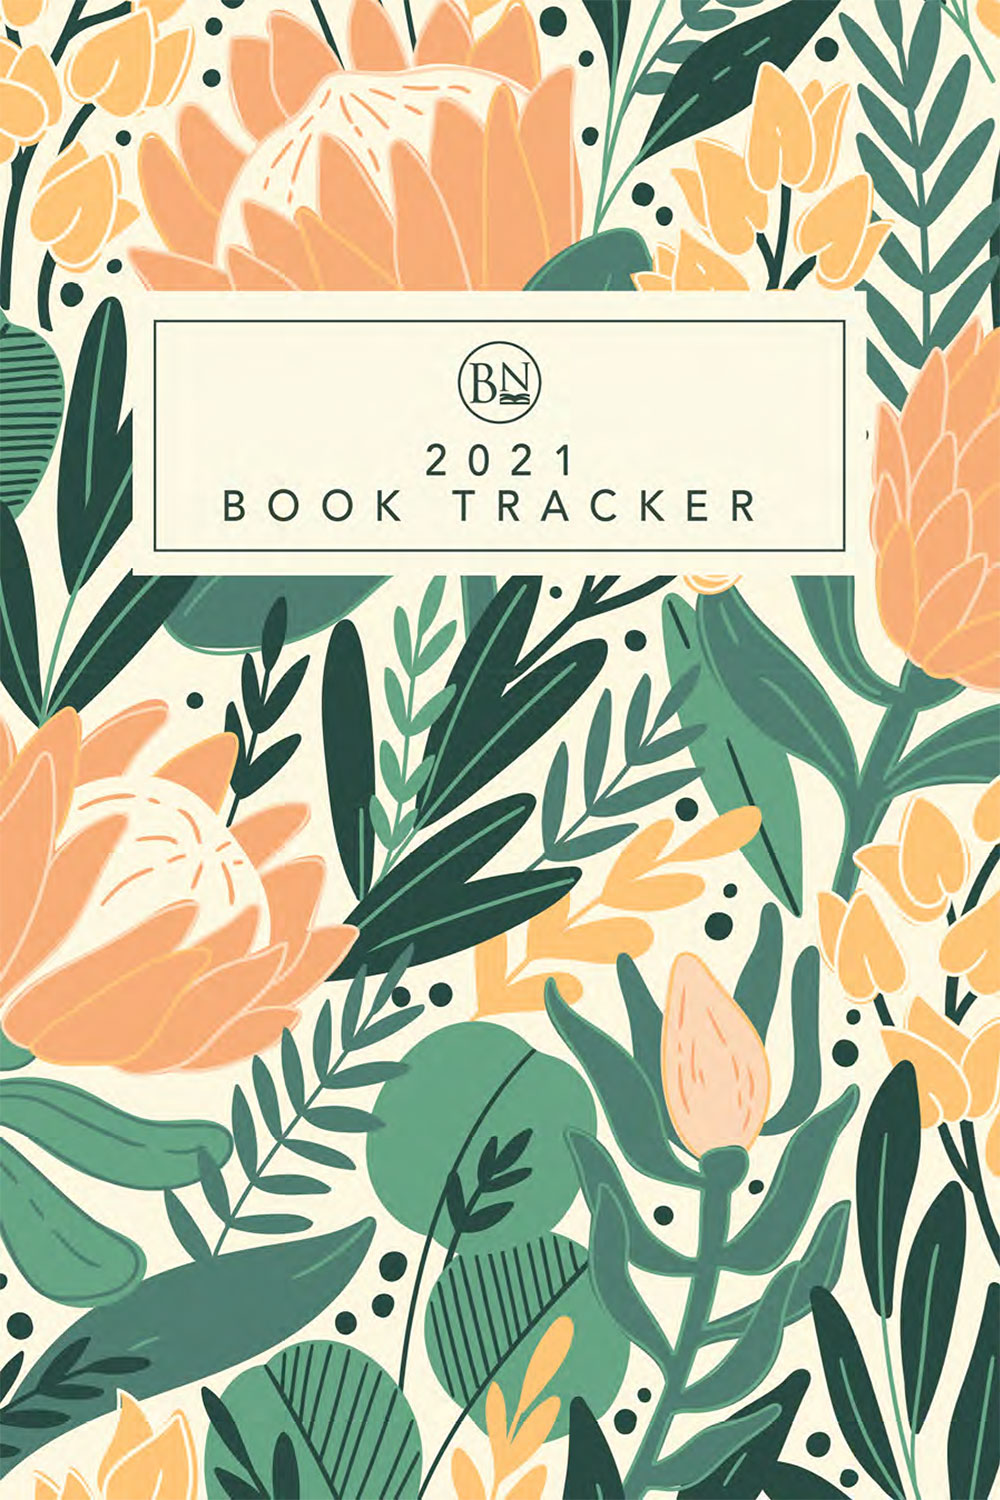 Download the 2021 Book Tracker for Free